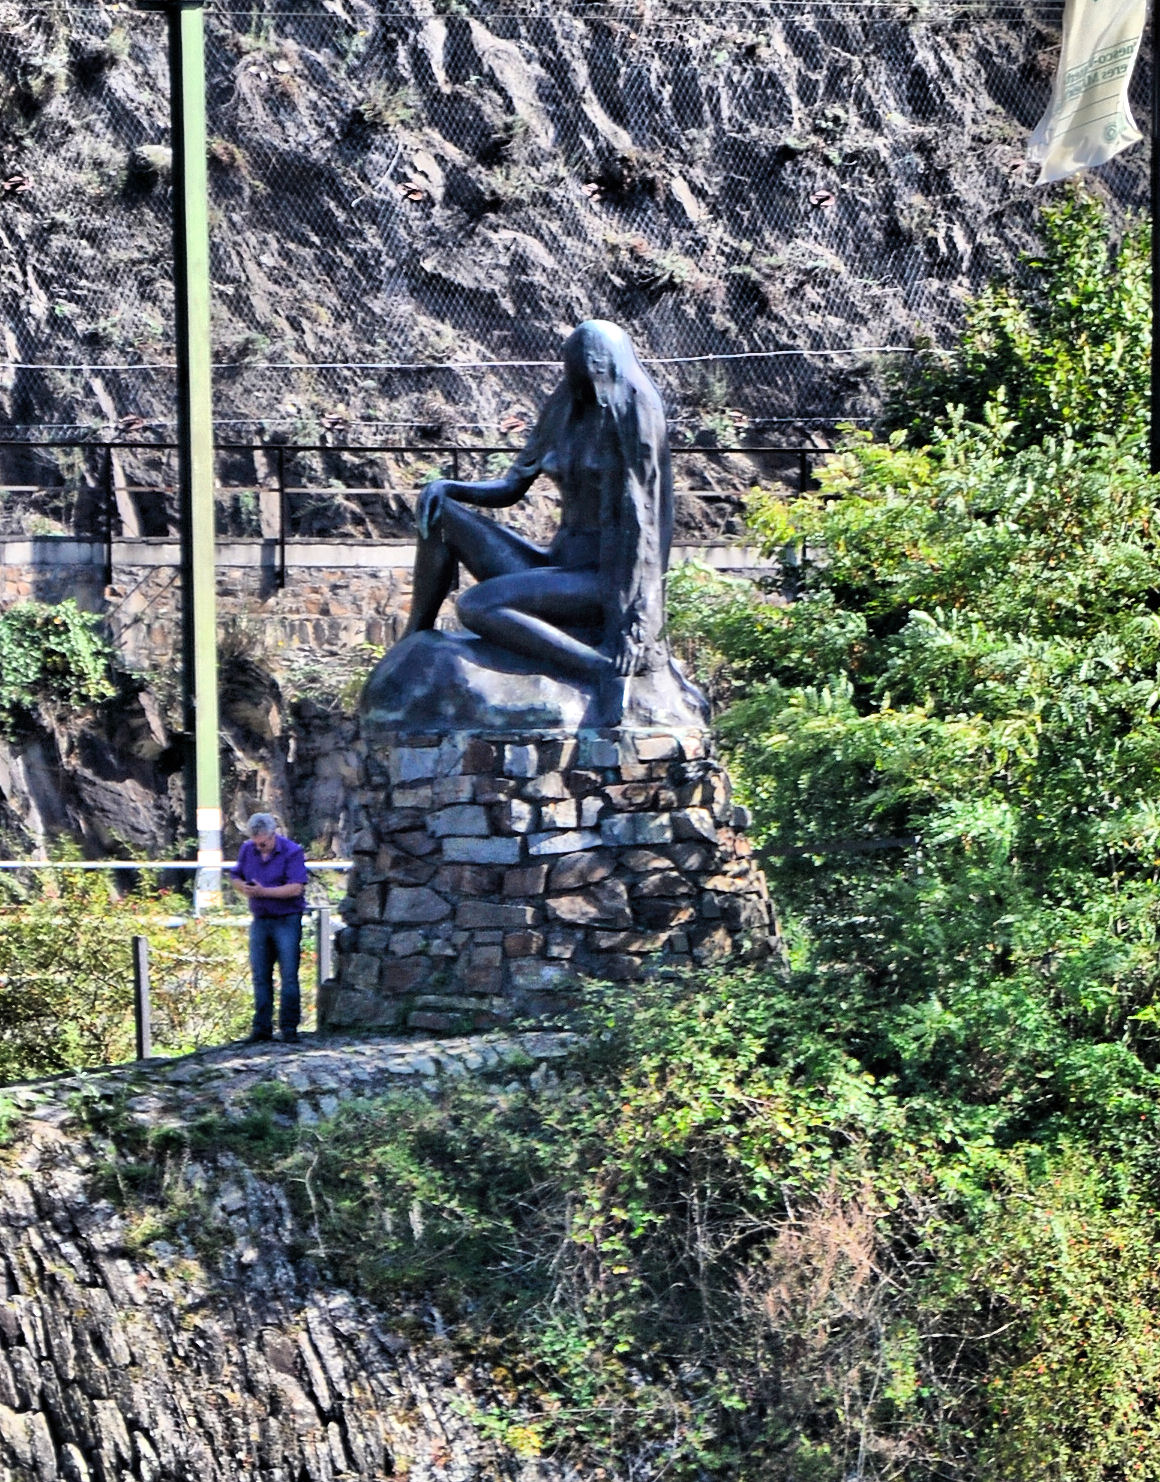 Loreley bides her time as she waits for the unwary sailor. This is one of two Loreley statues, this one along the bank of the river  and the other high atop the Loreley Rock.